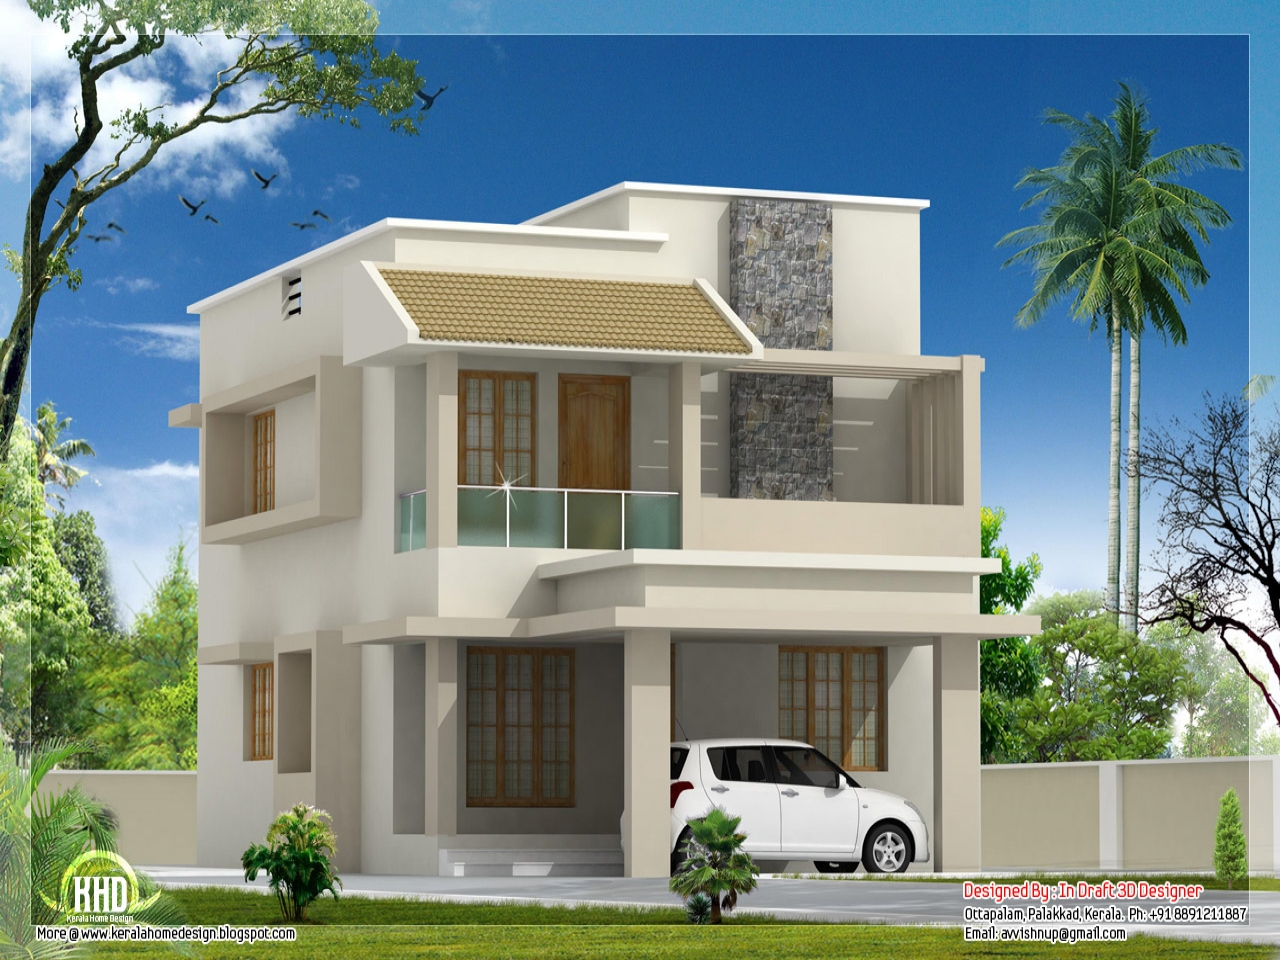 Modern house exterior modern villa design plan small for Modern house villa design